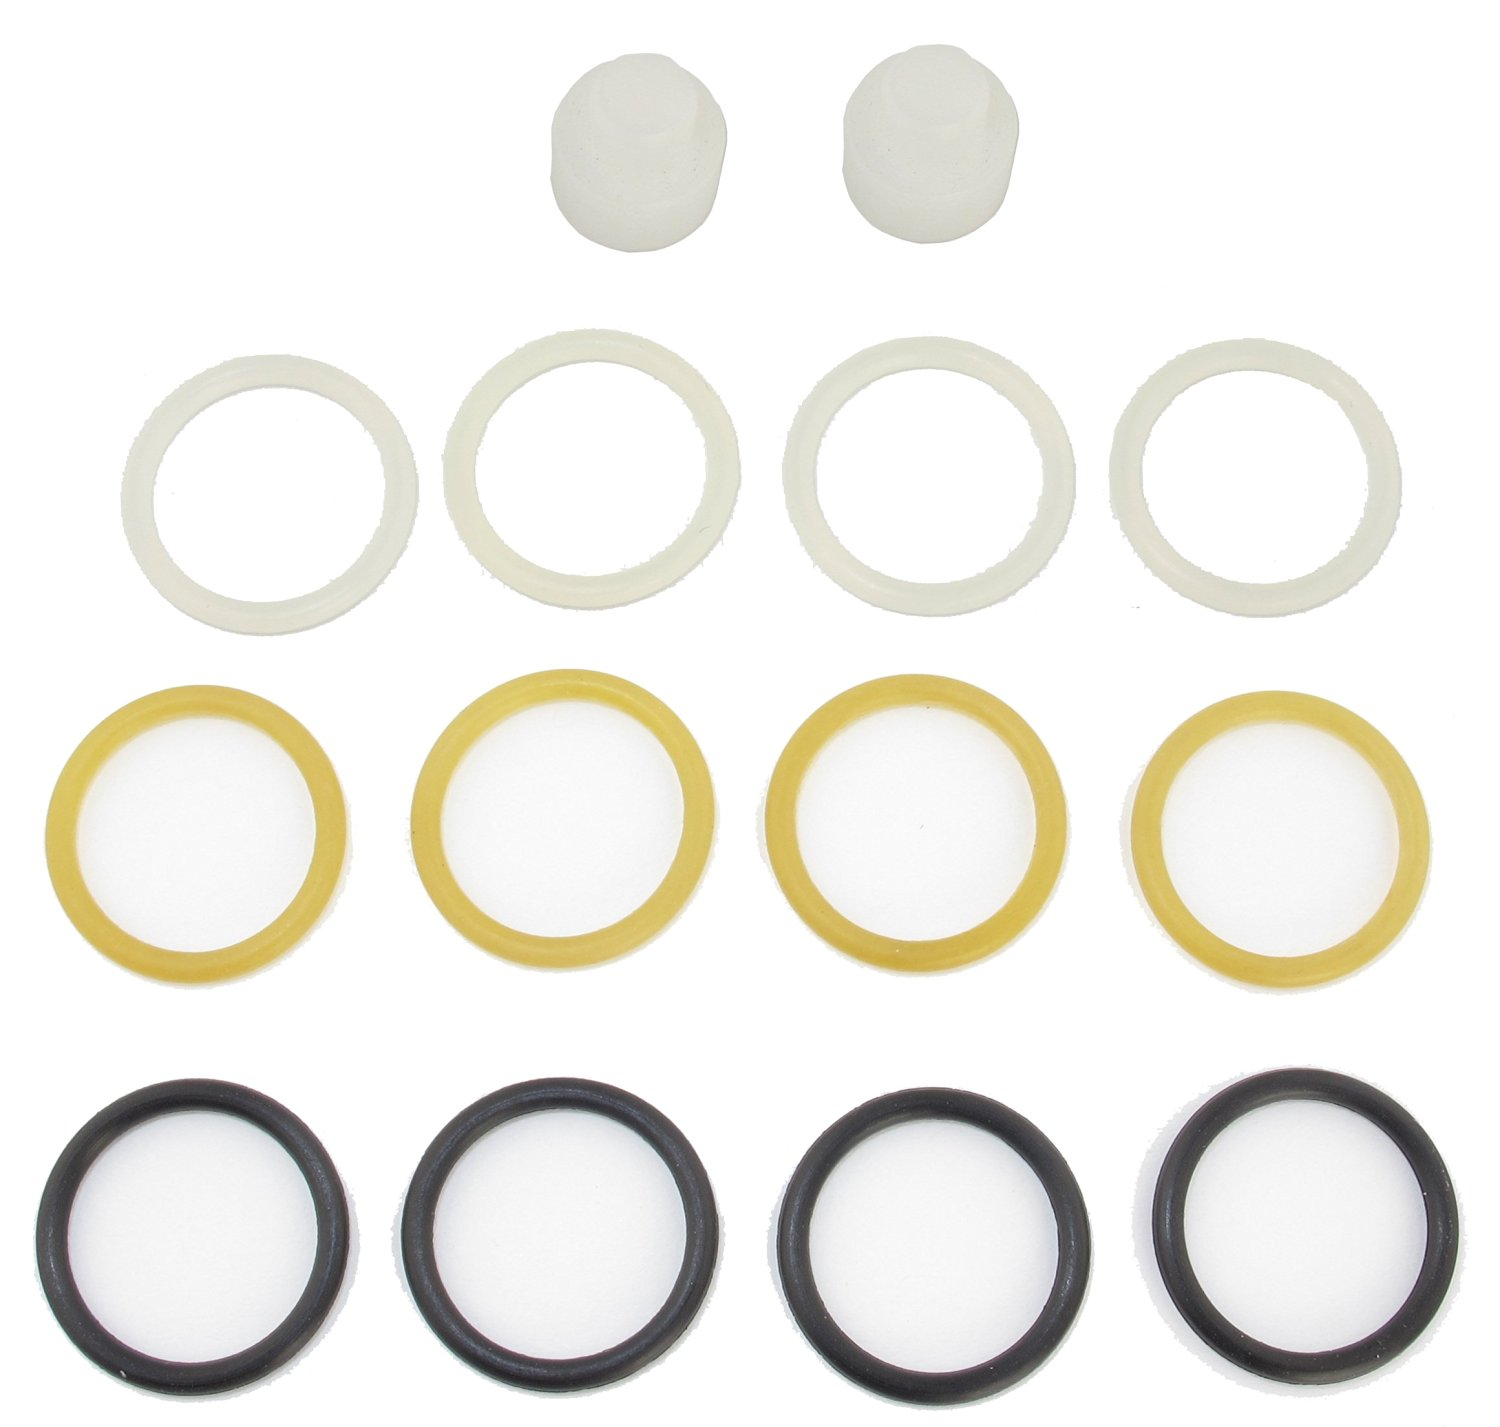 RPM Deluxe Spyder Oring Kit with 19A/18A for 1998 to pre 2012 Spyders - Most Commonly Needed OEM O-Rings X 2